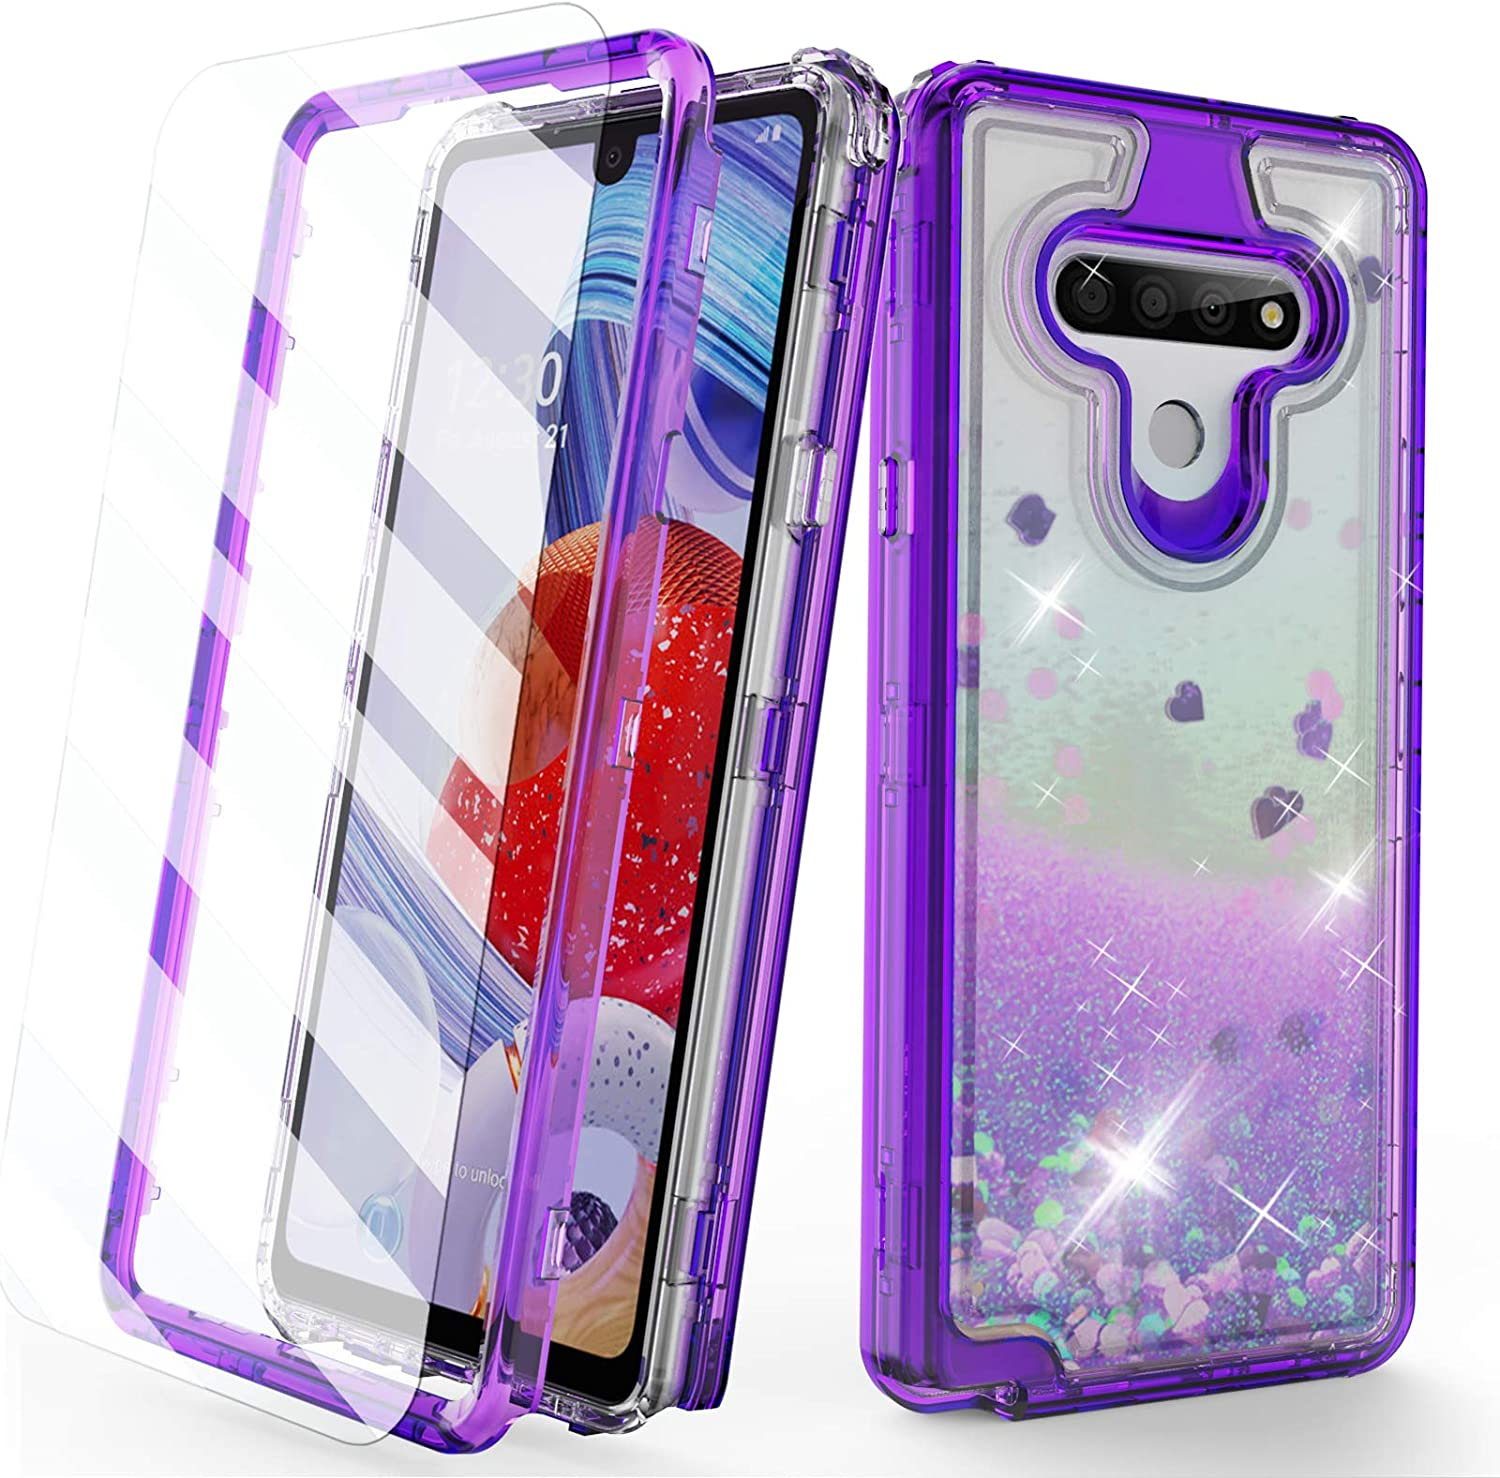 AMPURSQ Case for LG Stylo 6 LMQ730, LG K71 Stylus Case Glitter Liquid Moving Quicksand Design Heavy Duty Protection with Rugged Hard PC and TPU Bumper Cover for Android LG Phone (Purple)